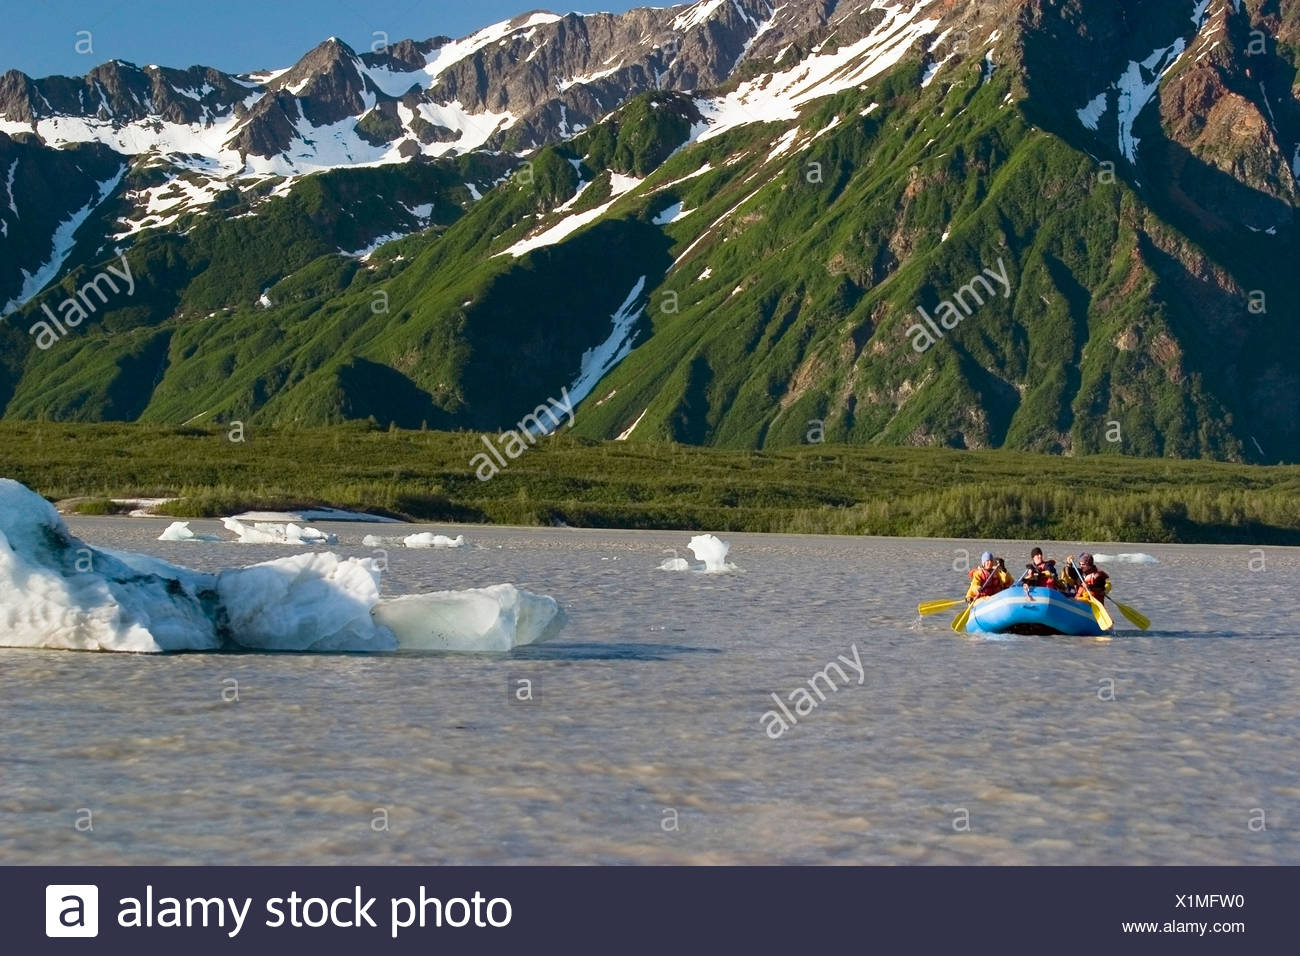 Rafting group paddles across Miles Lake to finish a 250-mile expedtion in the Copper River drainage Southcentral Alaska summer - Stock Image